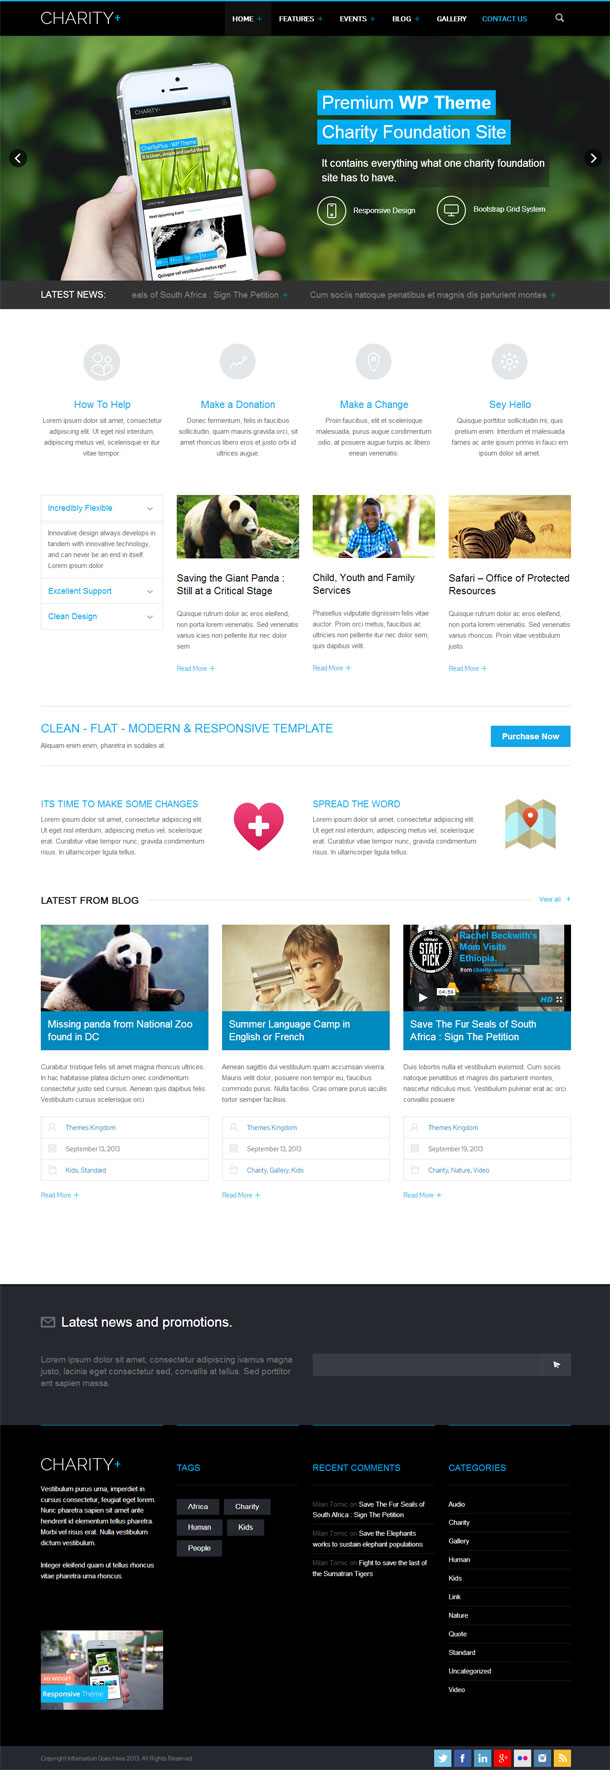 Charity+ Best Non Profit WordPress Theme Image